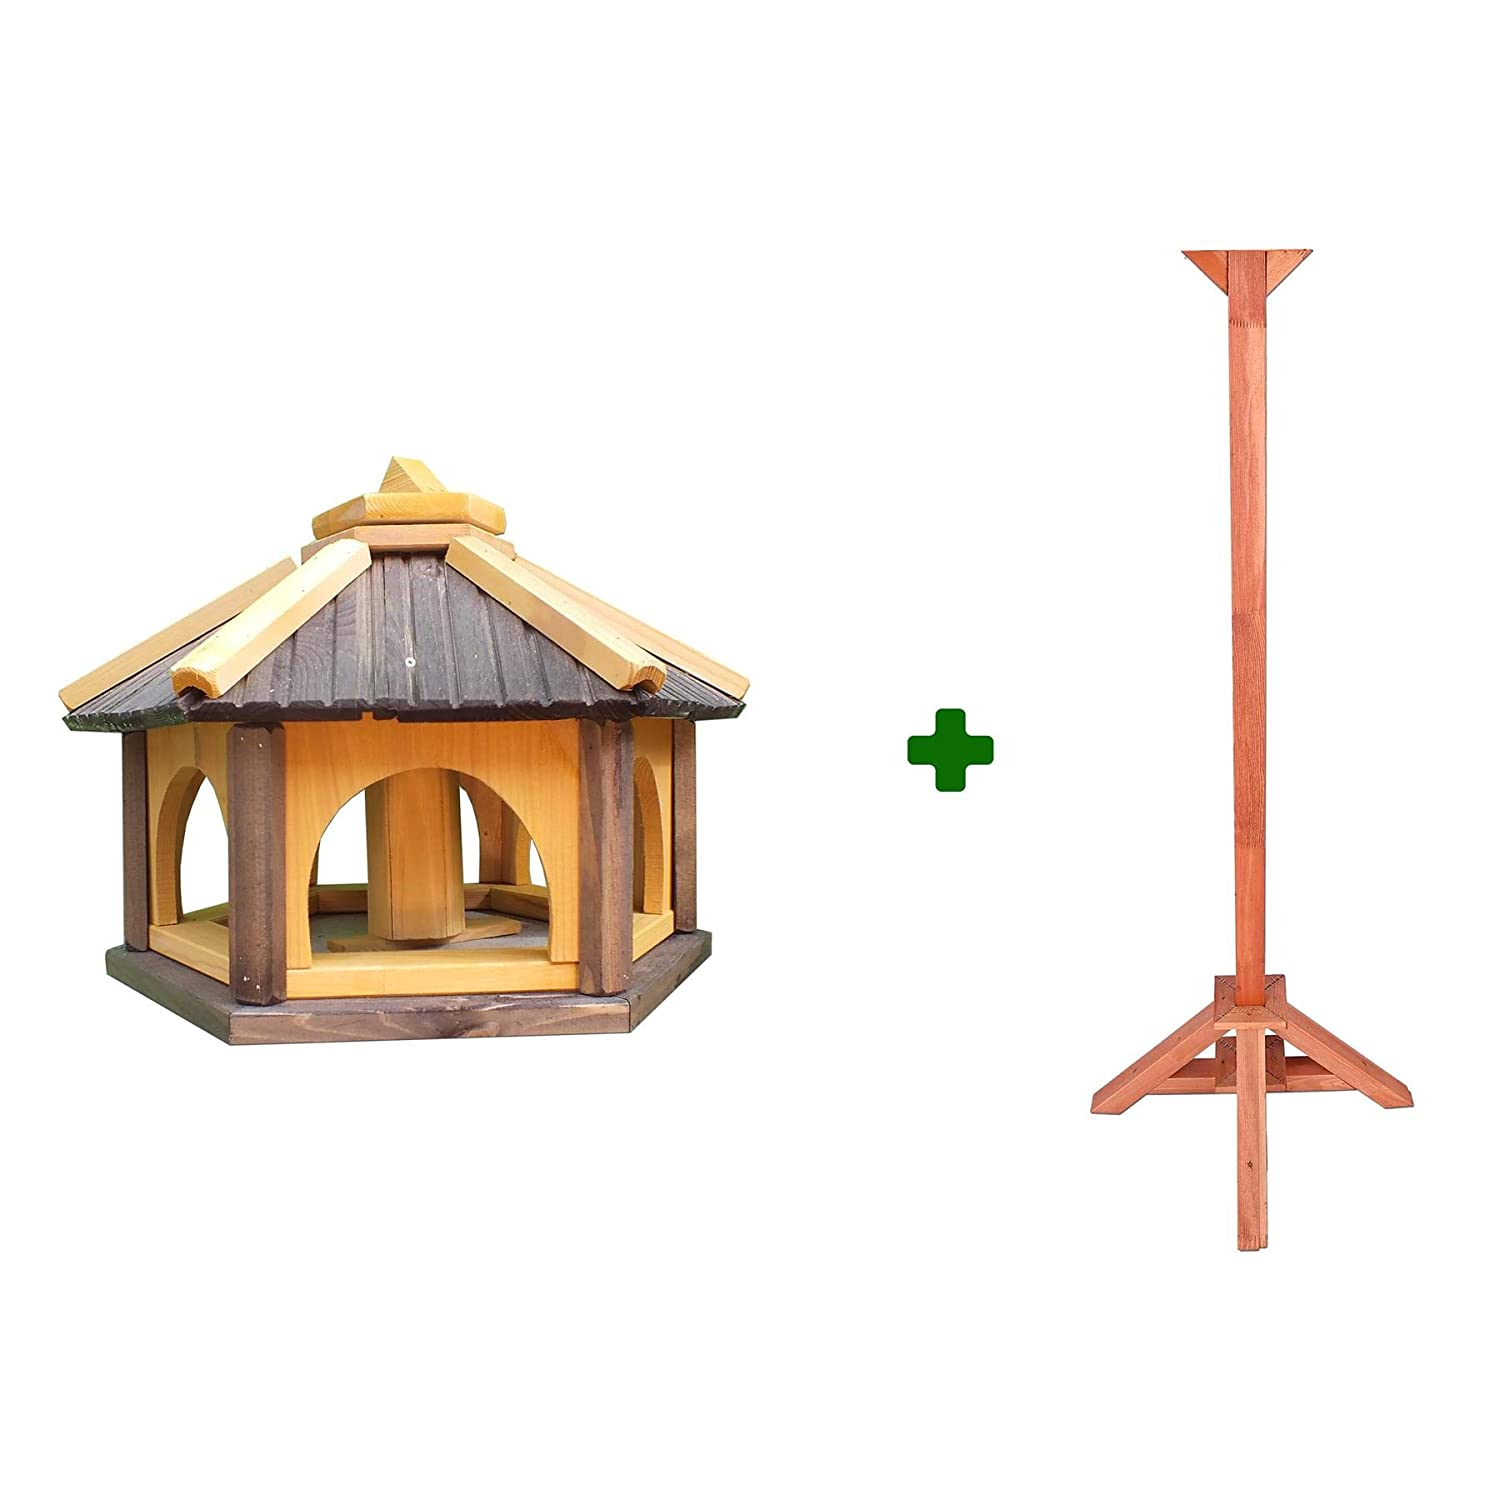 Roof 52x52 cm BRAN-50 TEAK Wooden Bird Table Feeder with Roof Nest Box Base 43x43 cm Traditional Freestanding Garden Birdhouse Feeding Station Without Stand